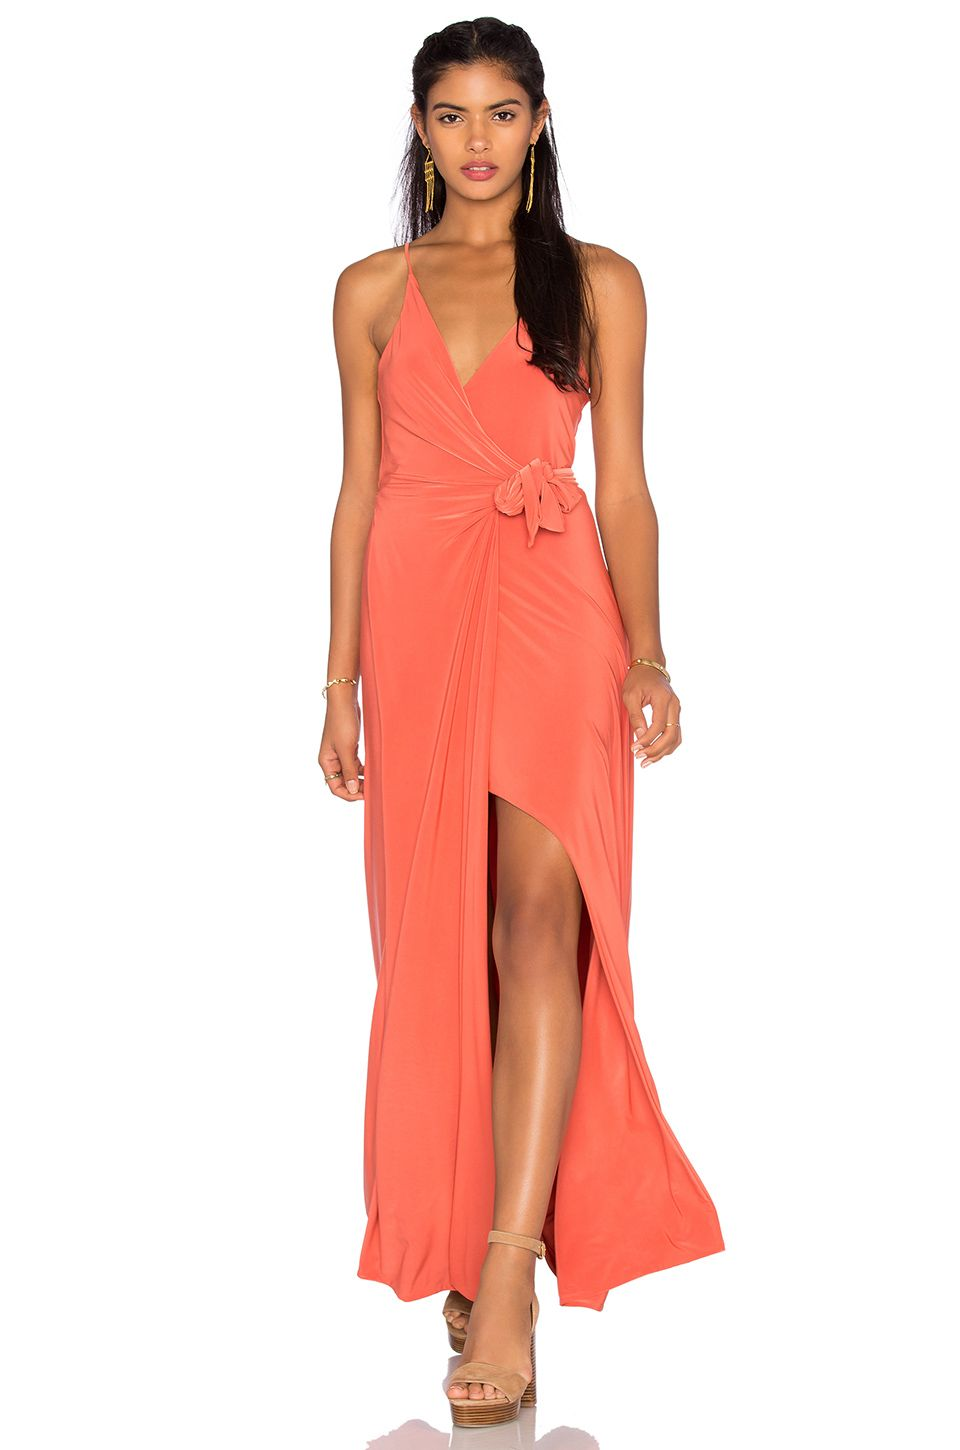 1320e1d115d MISA LOS ANGELES MISA LOS ANGELES VERONIKA MAXI DRESS IN ORANGE. .   misalosangeles  cloth  dress  top  shirt  pant  coat  jecket  jacket   shorts  ski